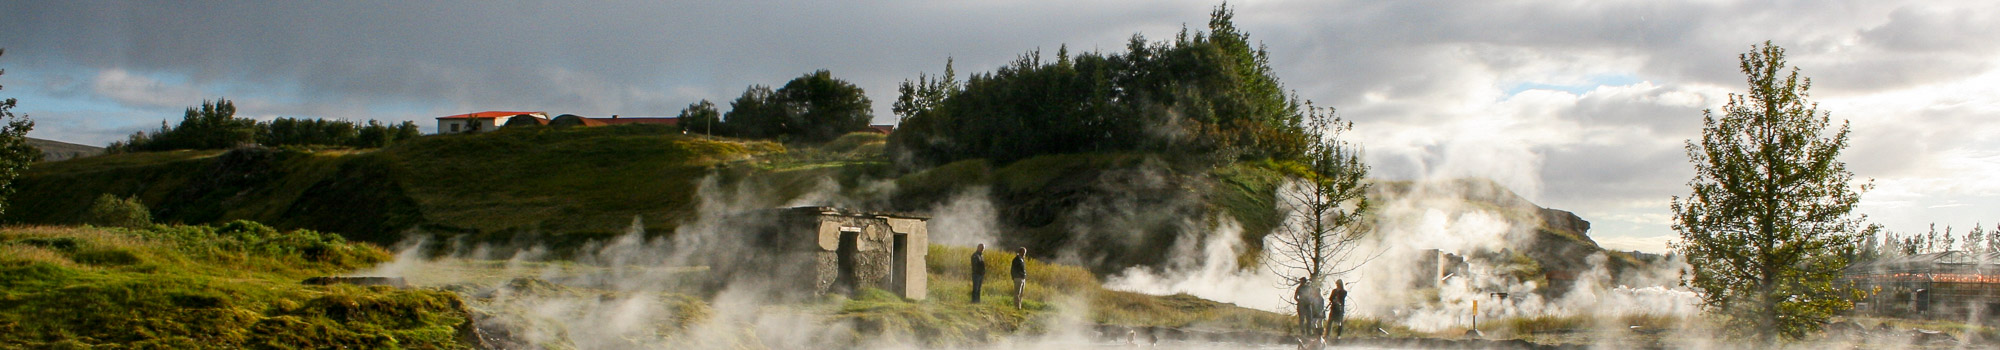 Steaming secret Lagoon in Iceland